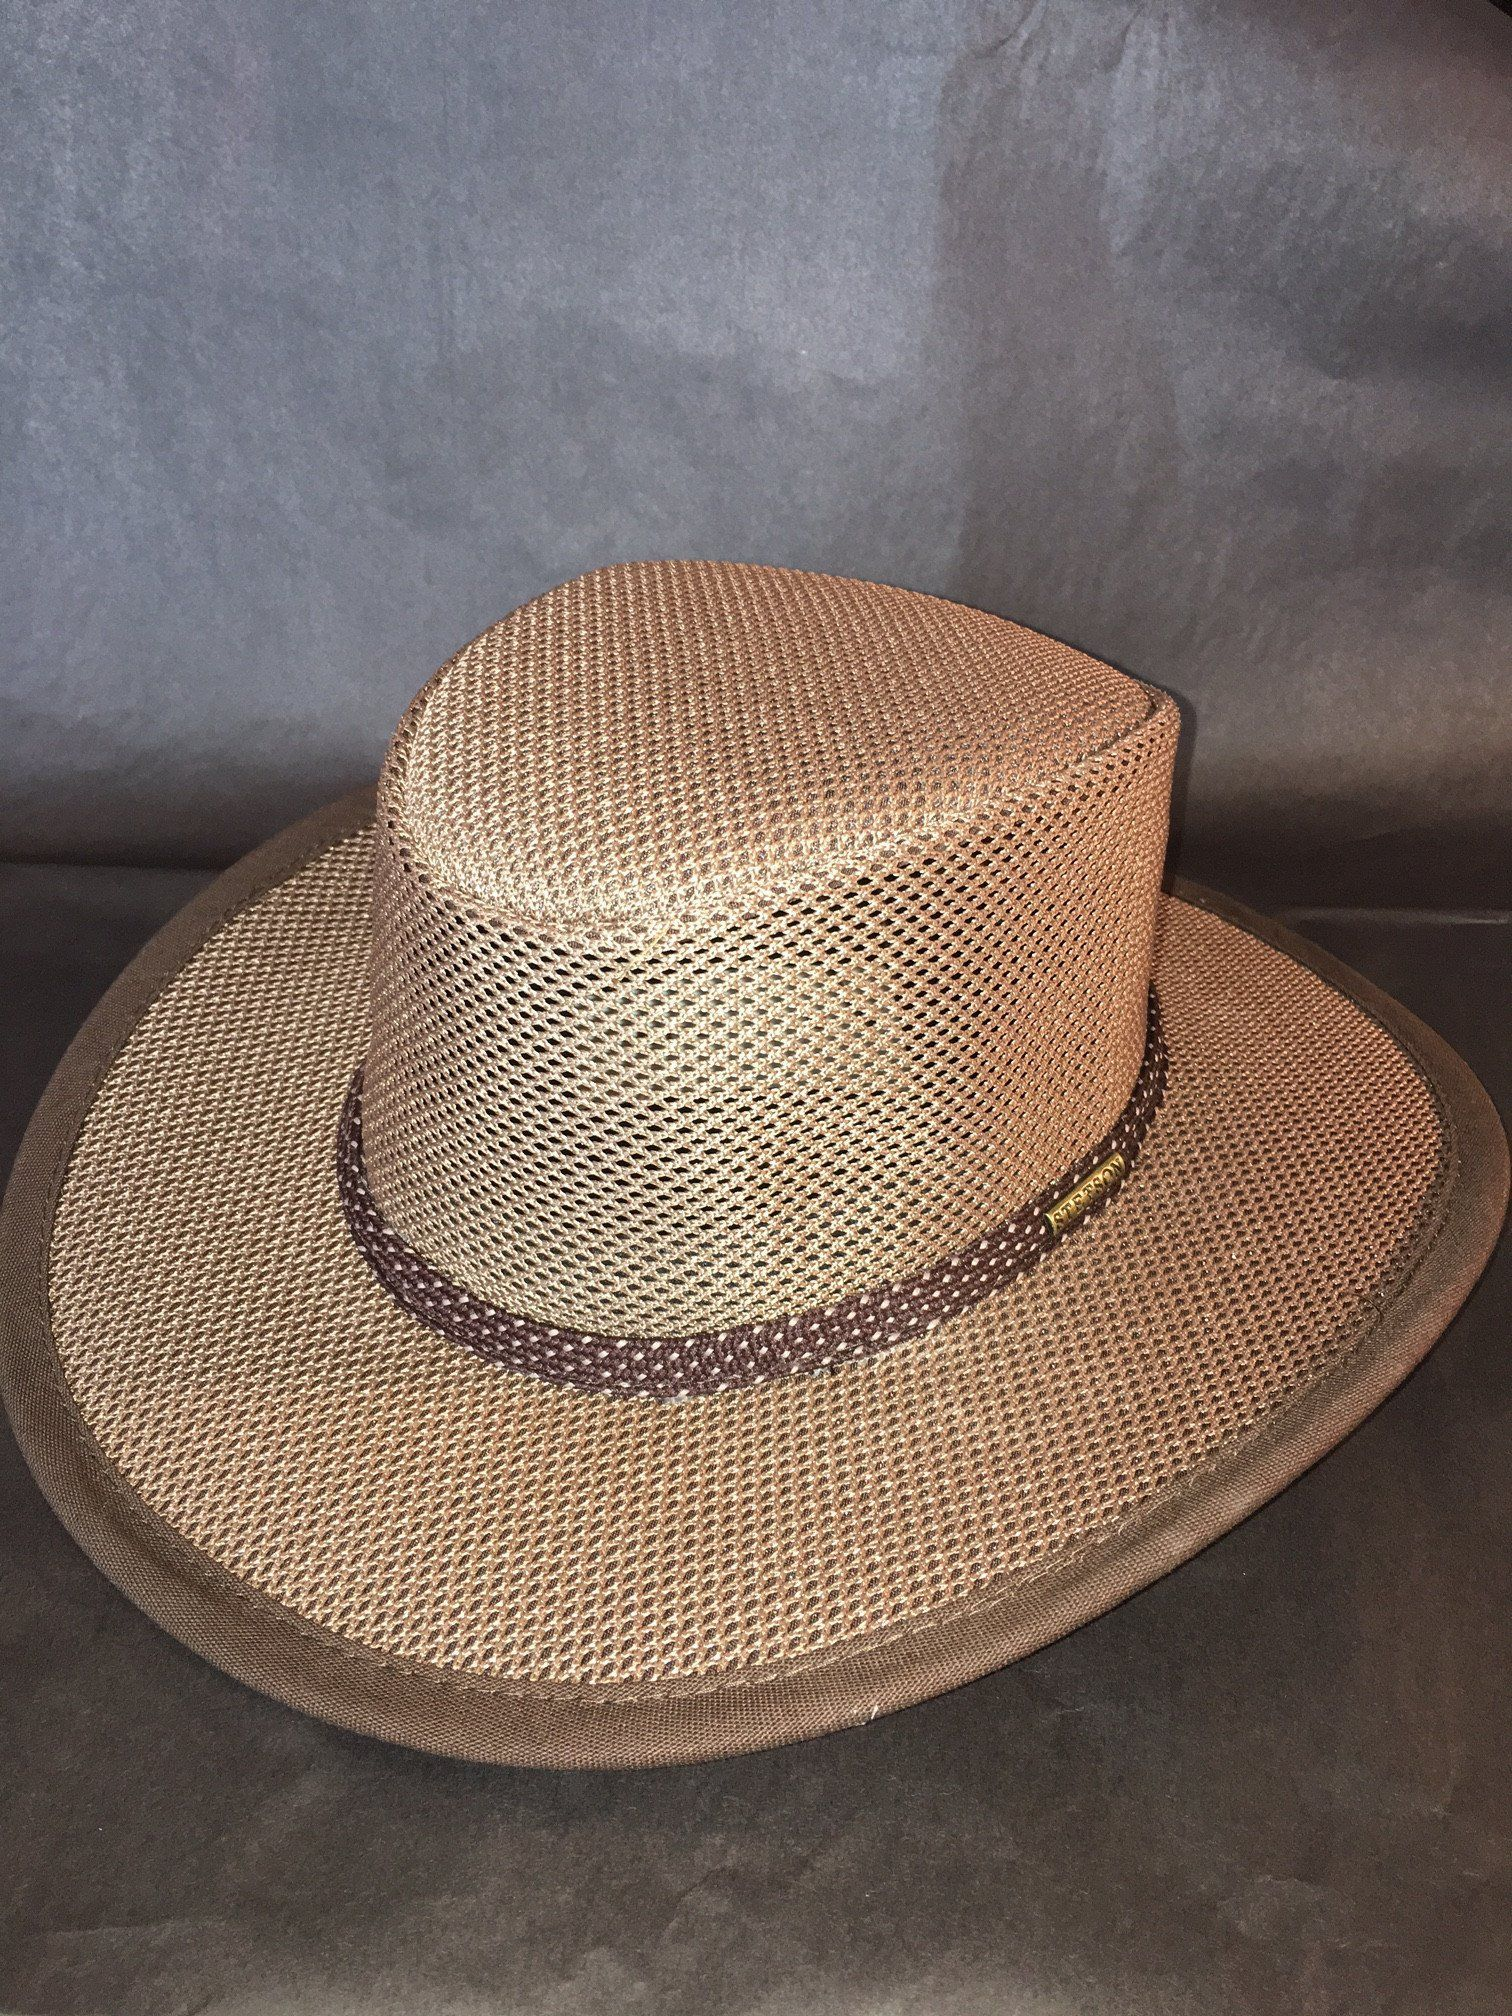 e00a0955b1e Walkabout Soakable Mesh Hat by Stetson, Cool Mesh Crushable Safari Hat